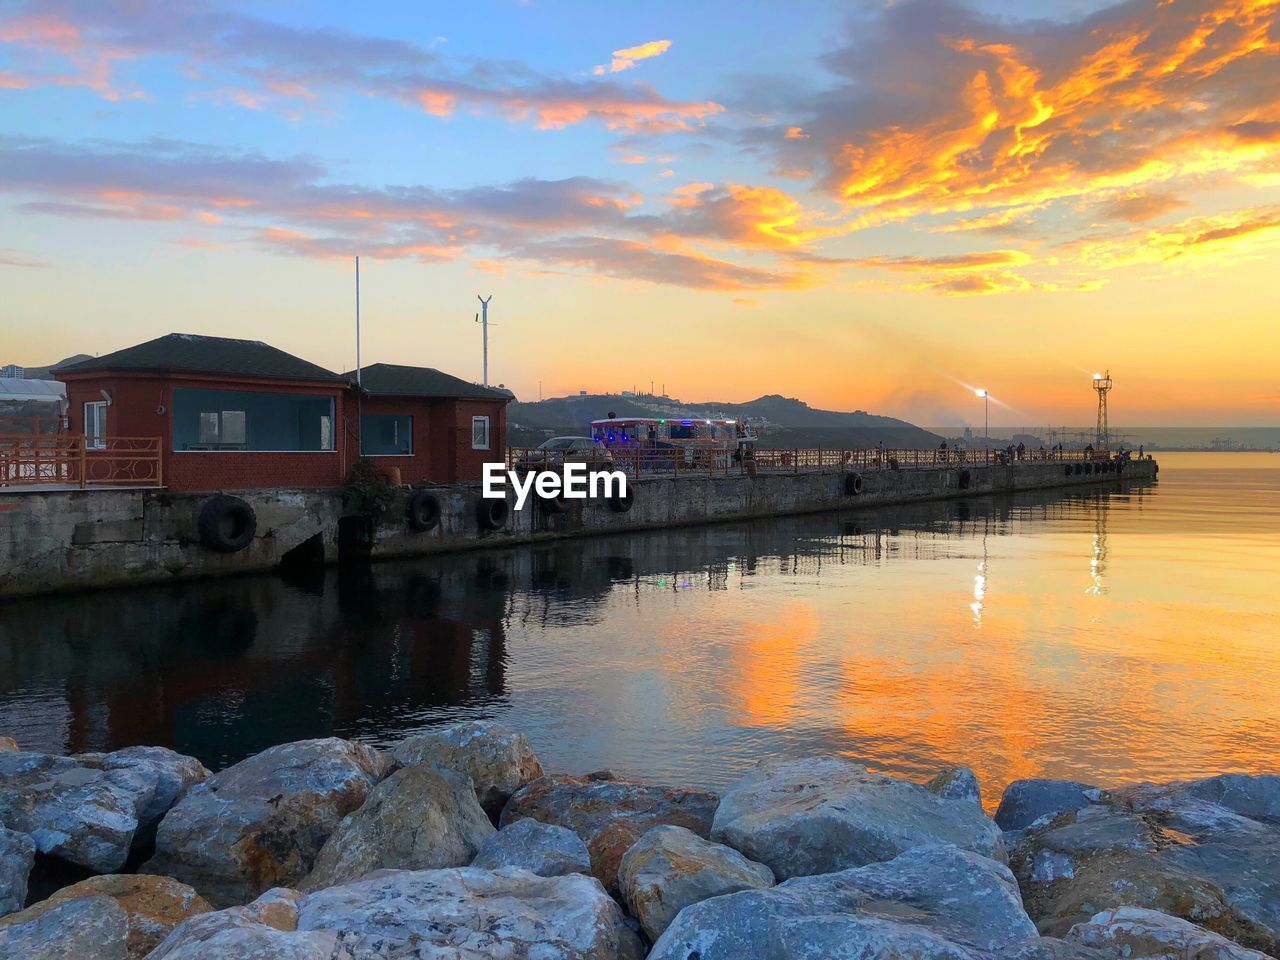 water, sky, sunset, built structure, architecture, building exterior, cloud - sky, orange color, reflection, sea, nature, building, beauty in nature, scenics - nature, rock, rock - object, solid, no people, tranquility, outdoors, bay